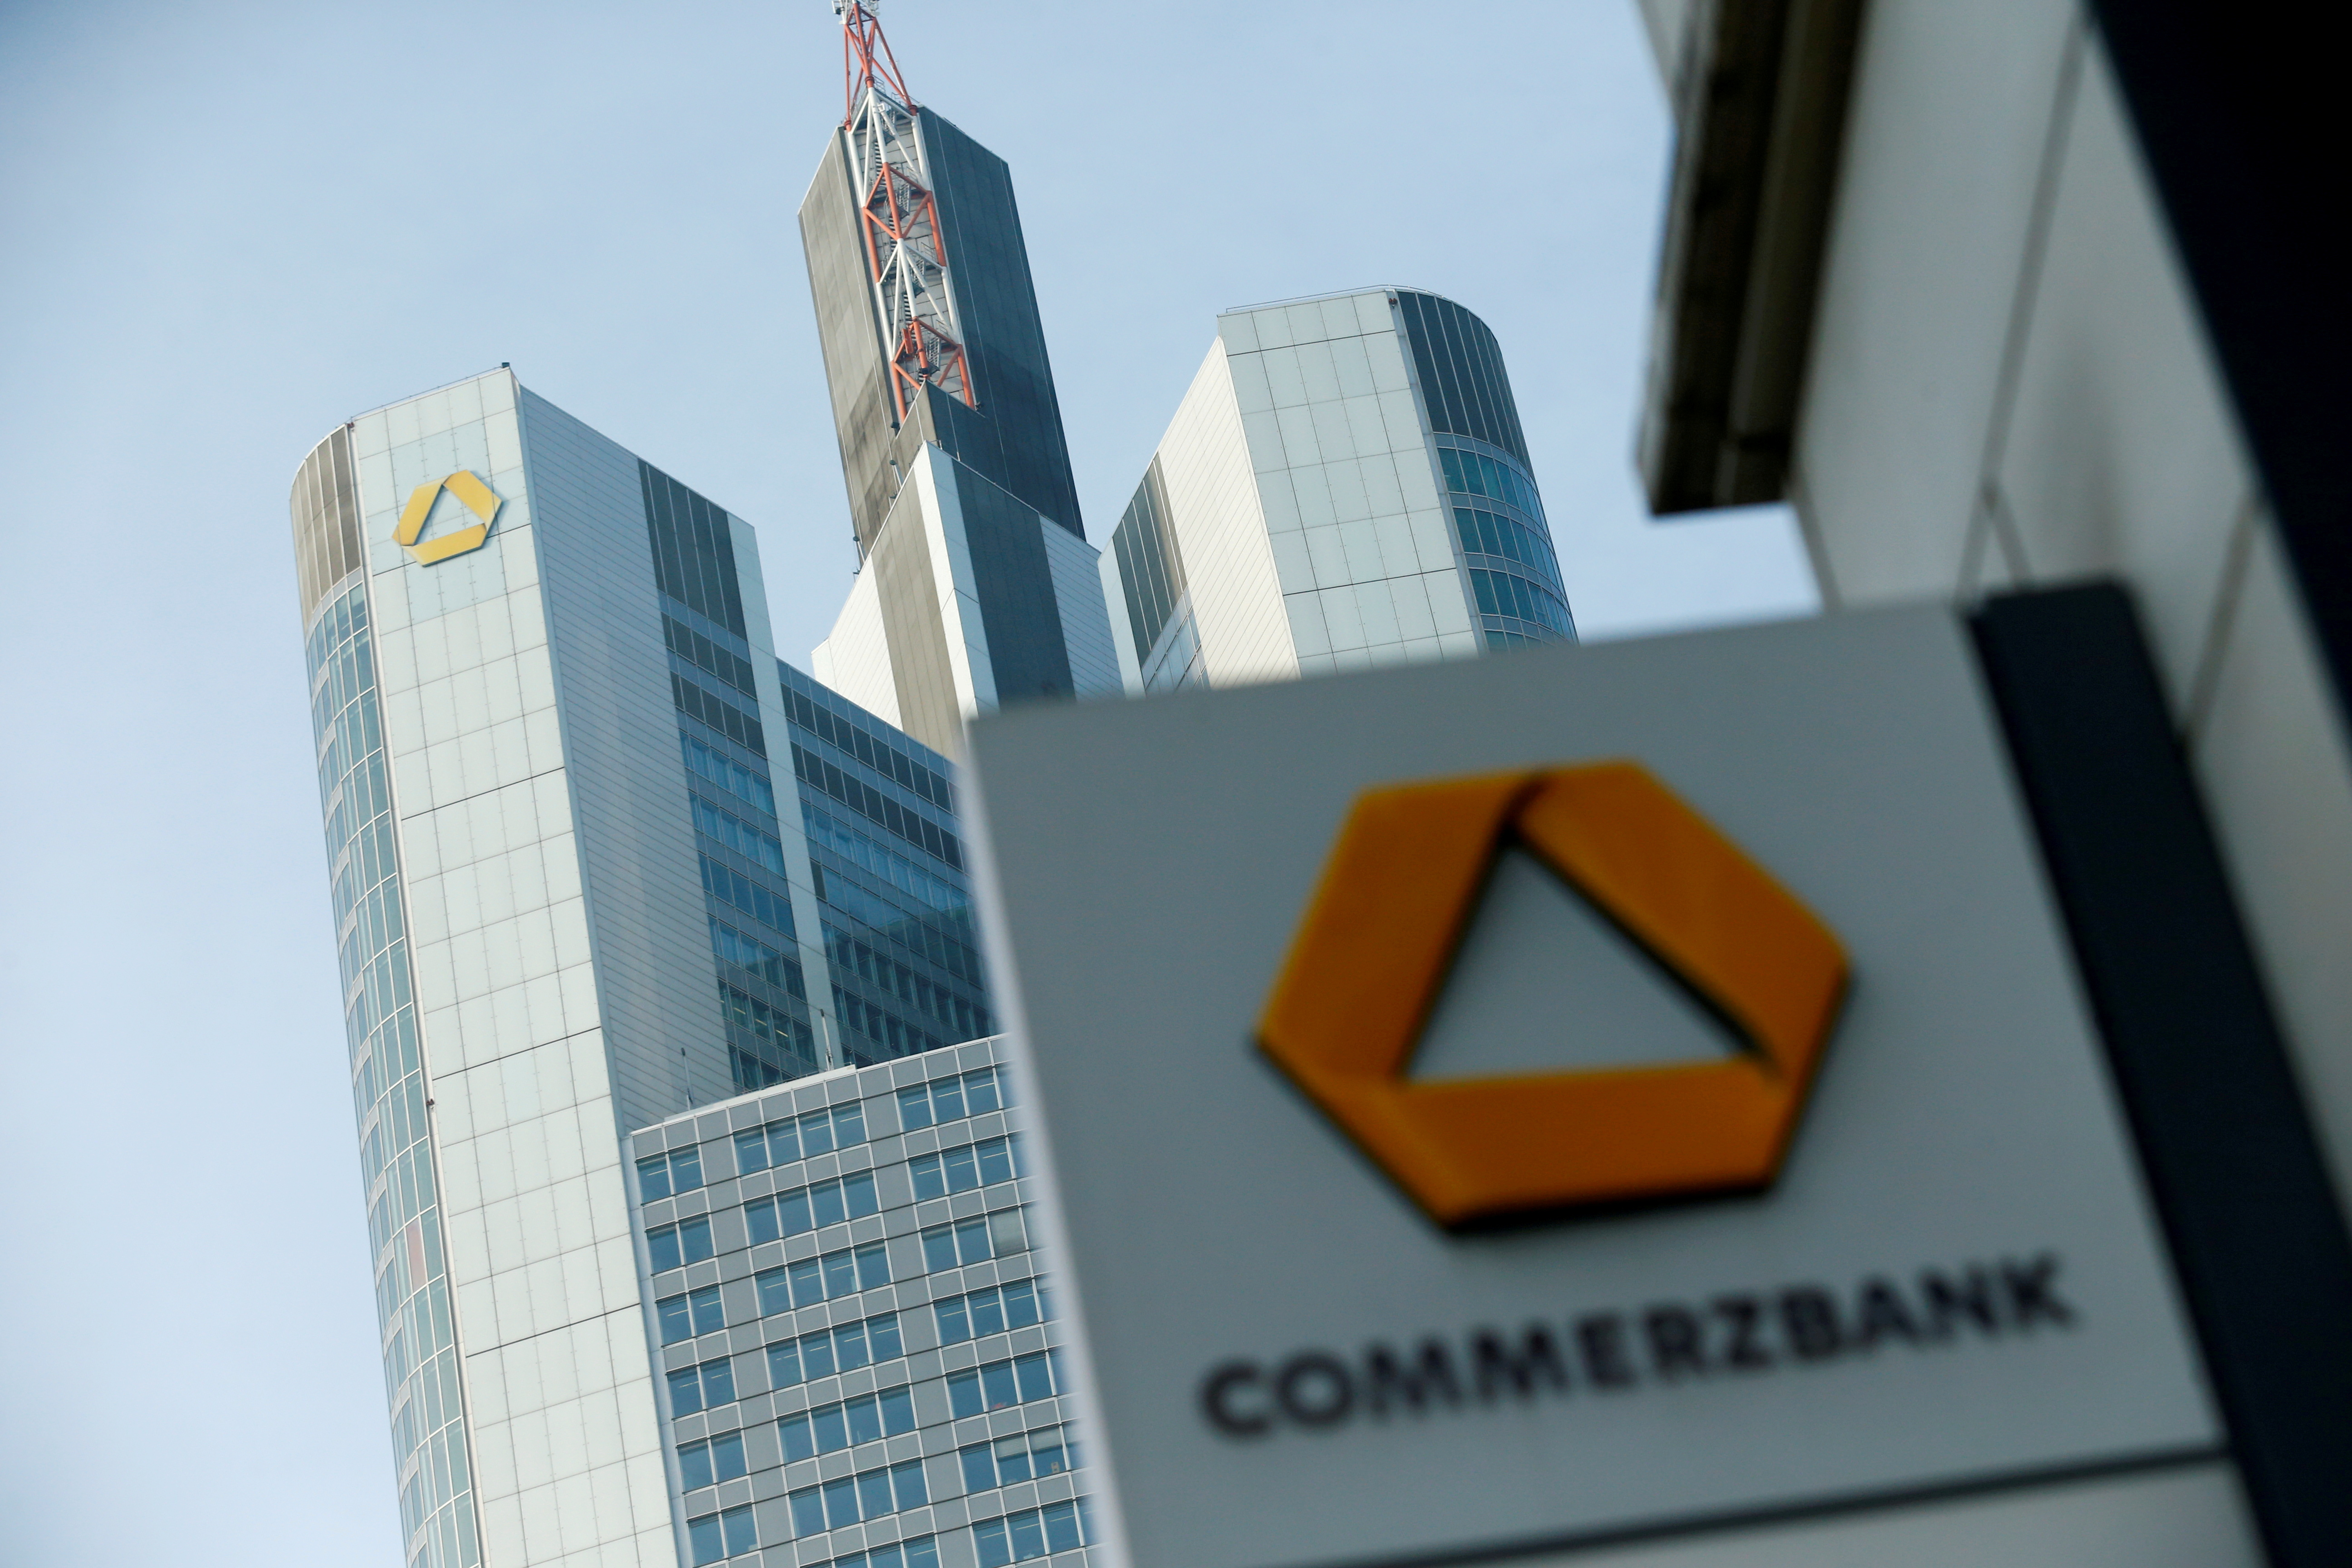 A Commerzbank logo is pictured before the bank's annual news conference in Frankfurt, Germany, February 9, 2017.    REUTERS/Ralph Orlowski/File Photo